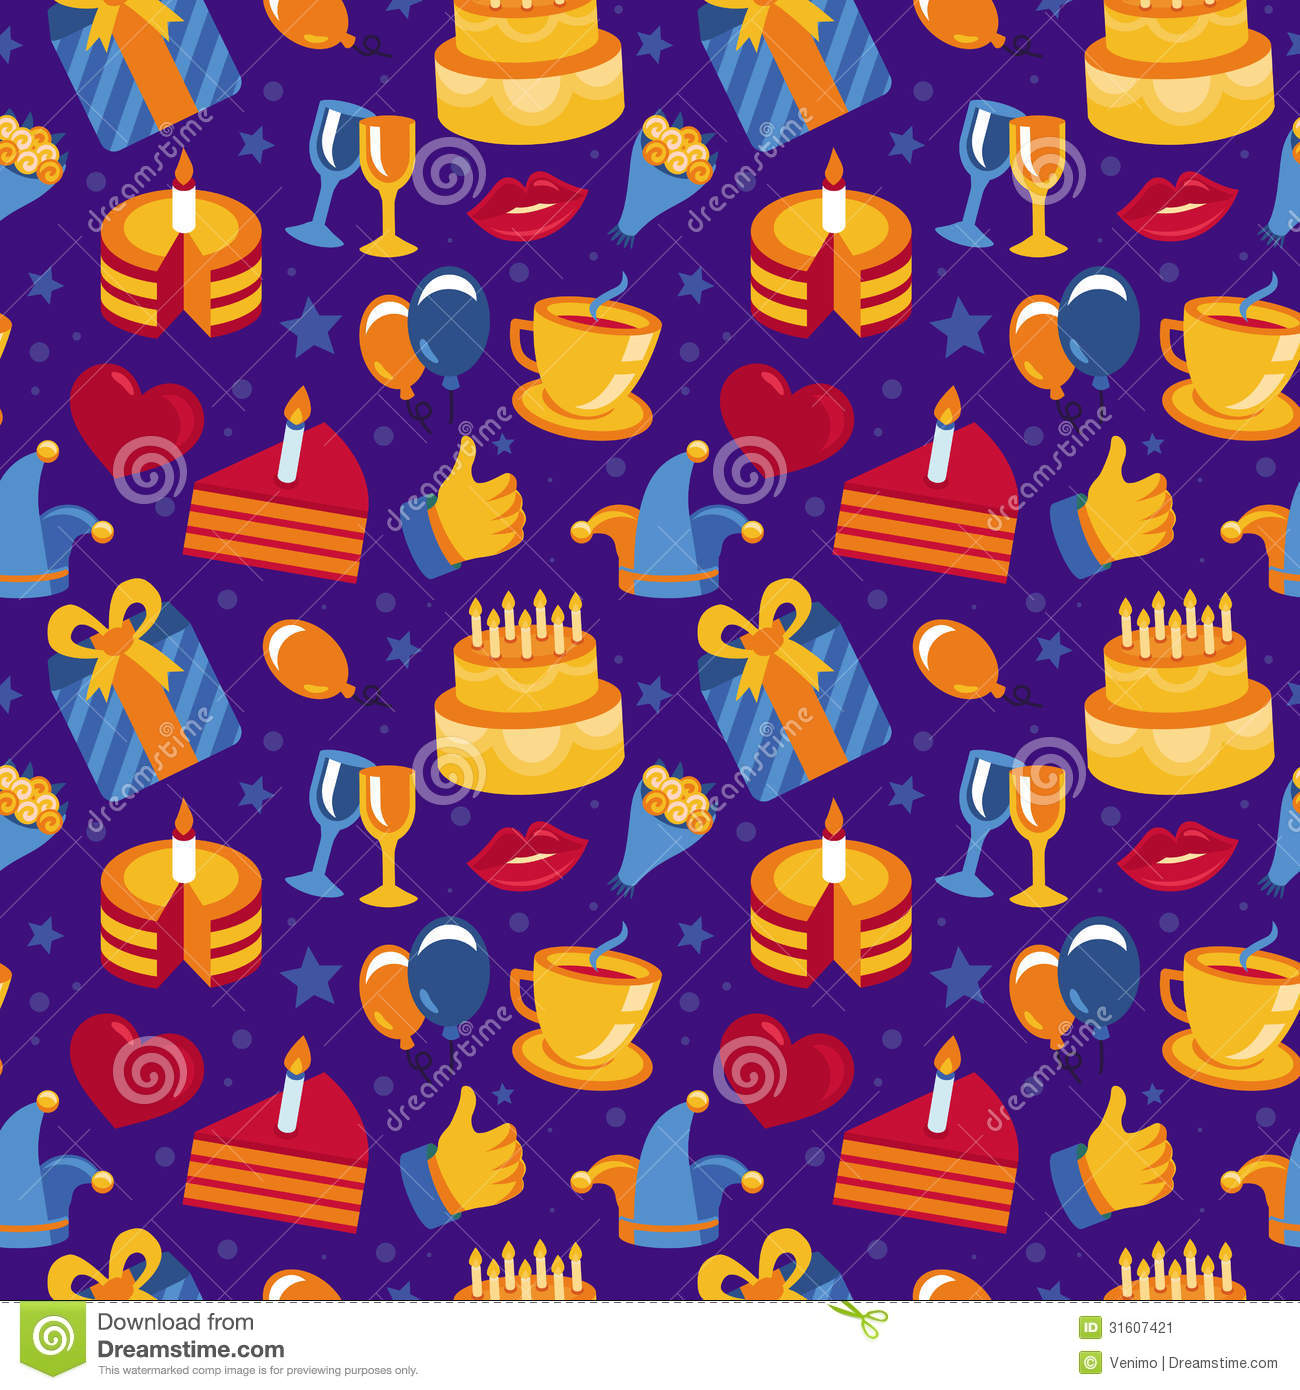 ... pattern with party icons and signs - happy birthday greeting card